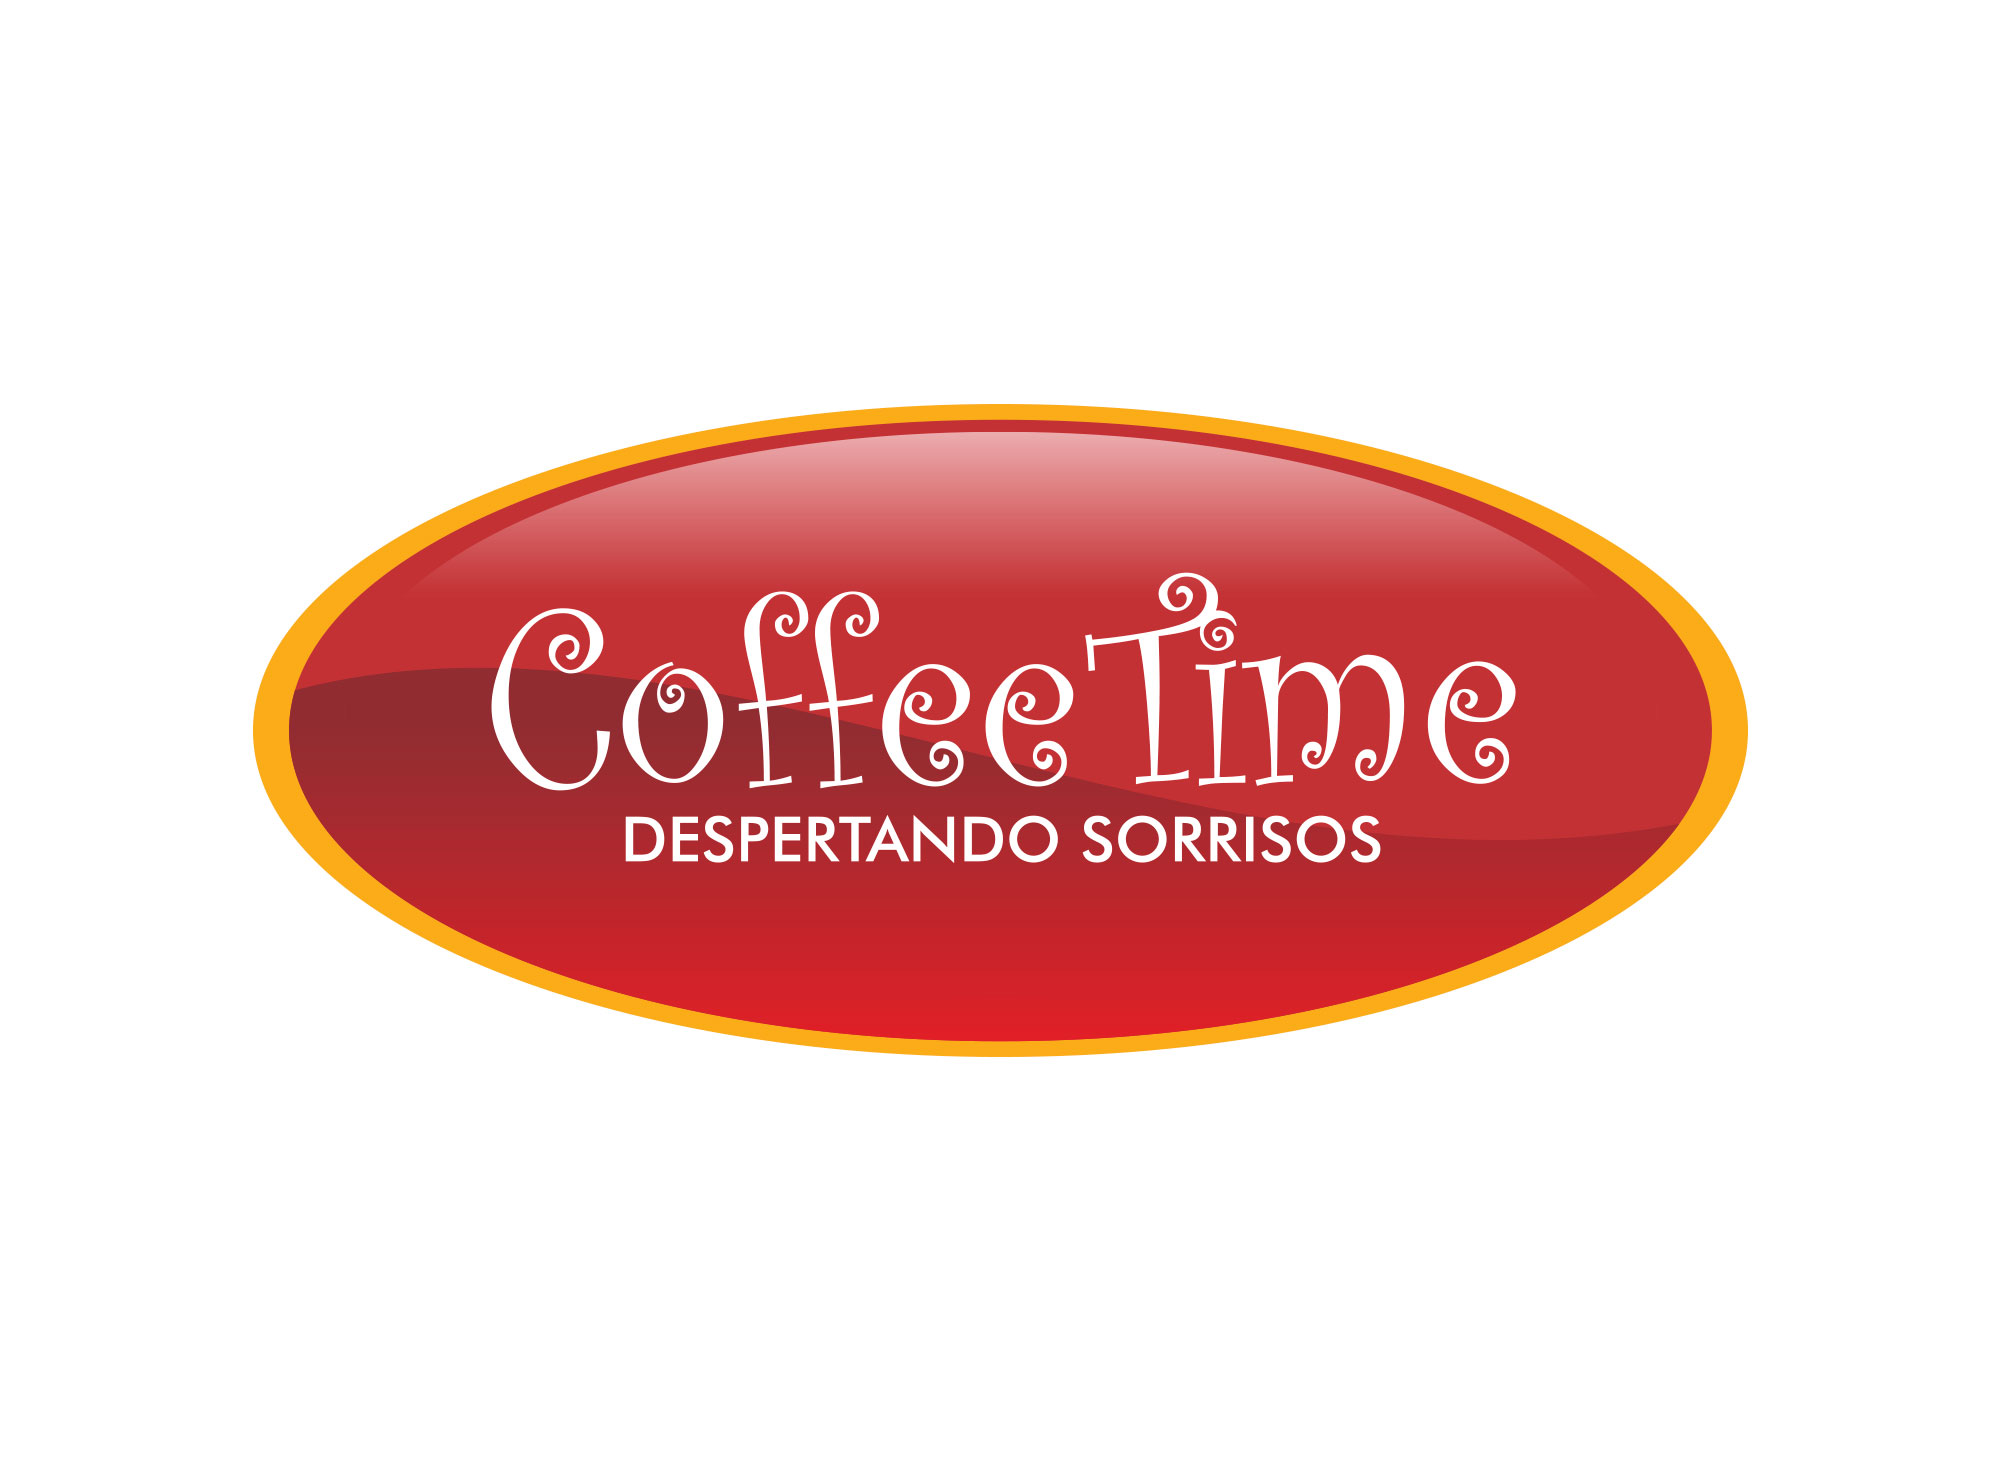 coffeetime-despertando-sonhos-cestas-clientes-agencia-diretriz-digital-marketing-loja-virtual-fortaleza